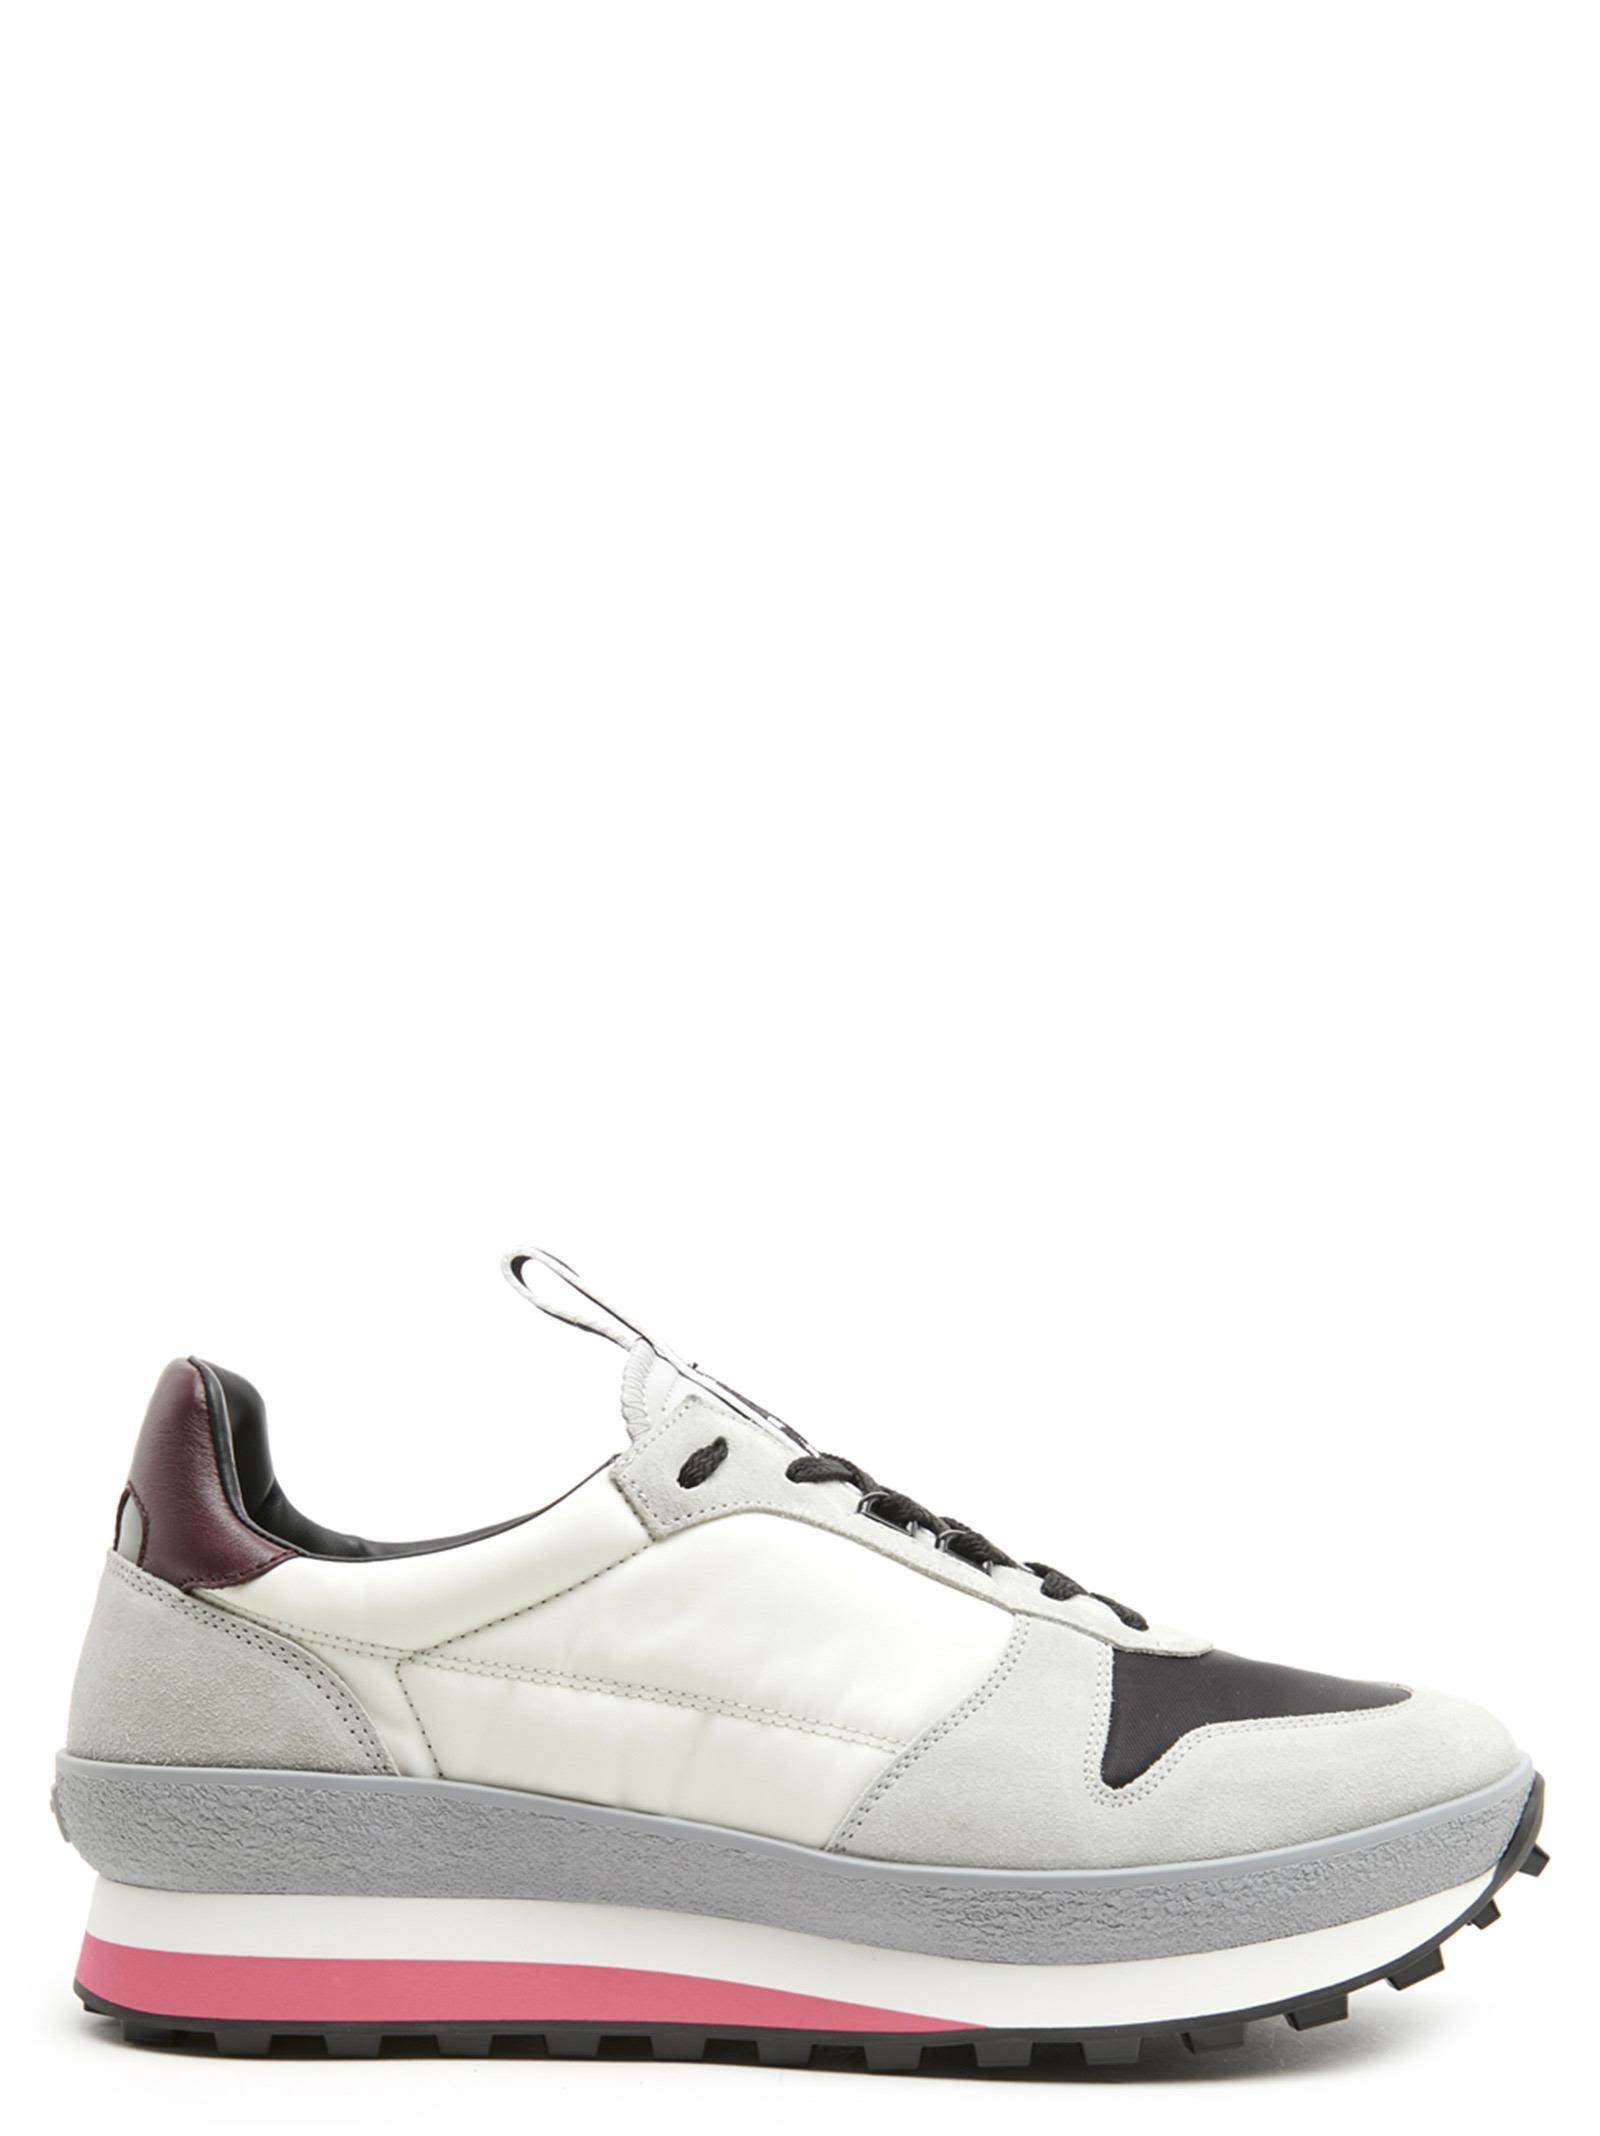 GIVENCHY TR3 SHOES